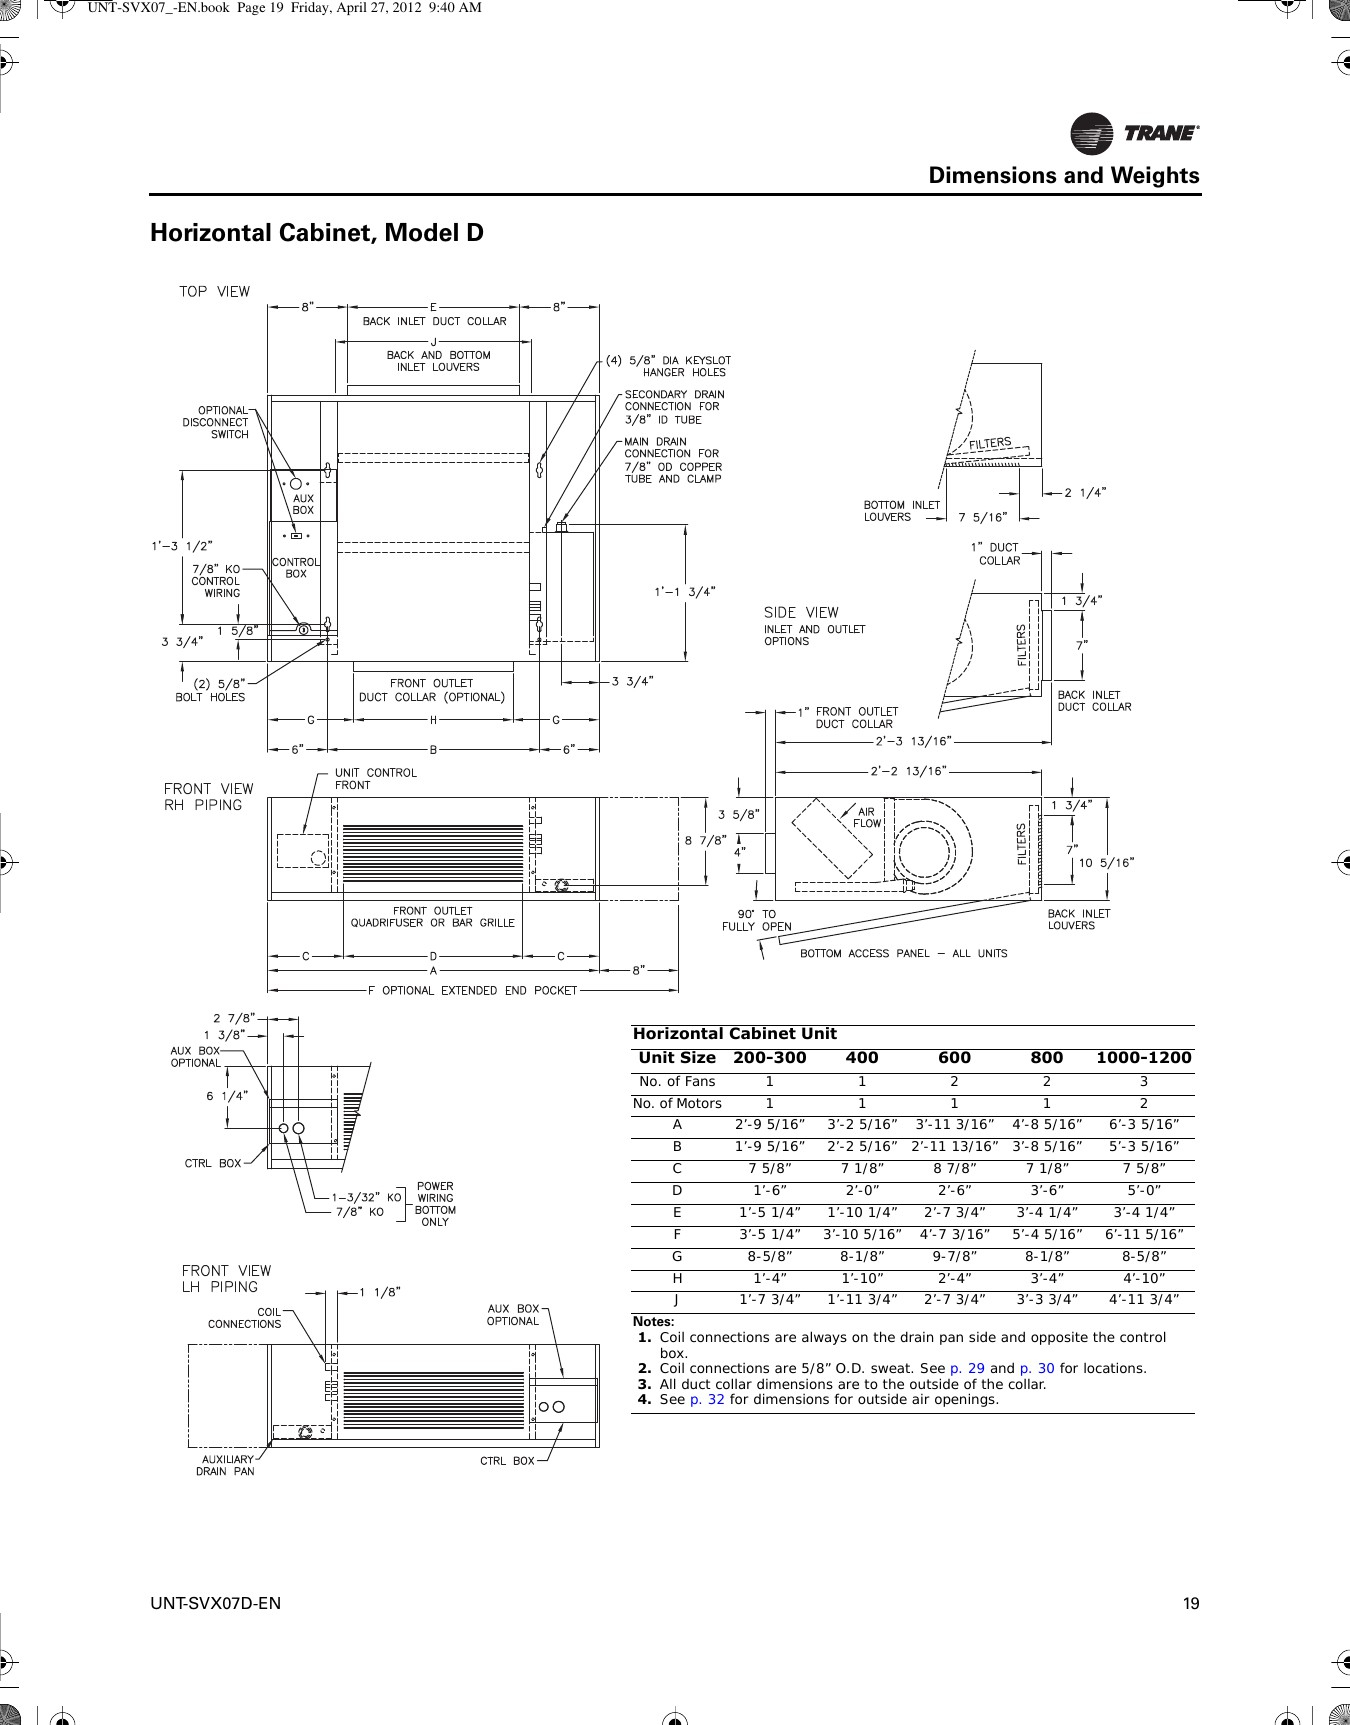 Wiring Diagram Sample Huge Collection Free Diagrams Download Trane Wsc060 Fresh Heat Pump Troubleshooting Choice Image